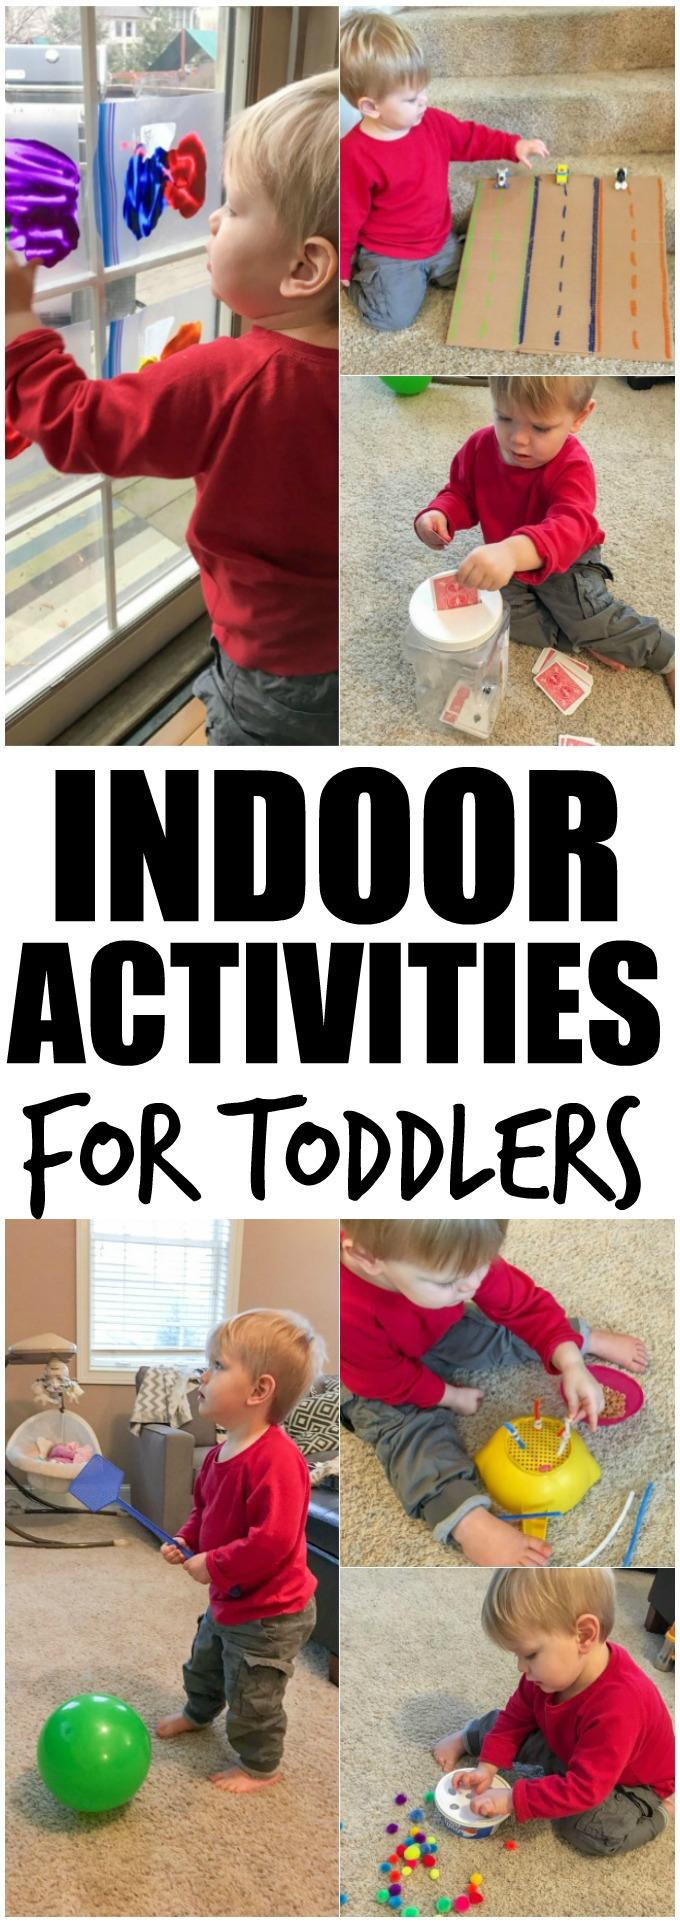 These Indoor Activities For Toddlers are perfect for winter or a rainy spring or summer day and many will help develop fine motor skills. Plus tips to make them harder for pre-school aged kids.